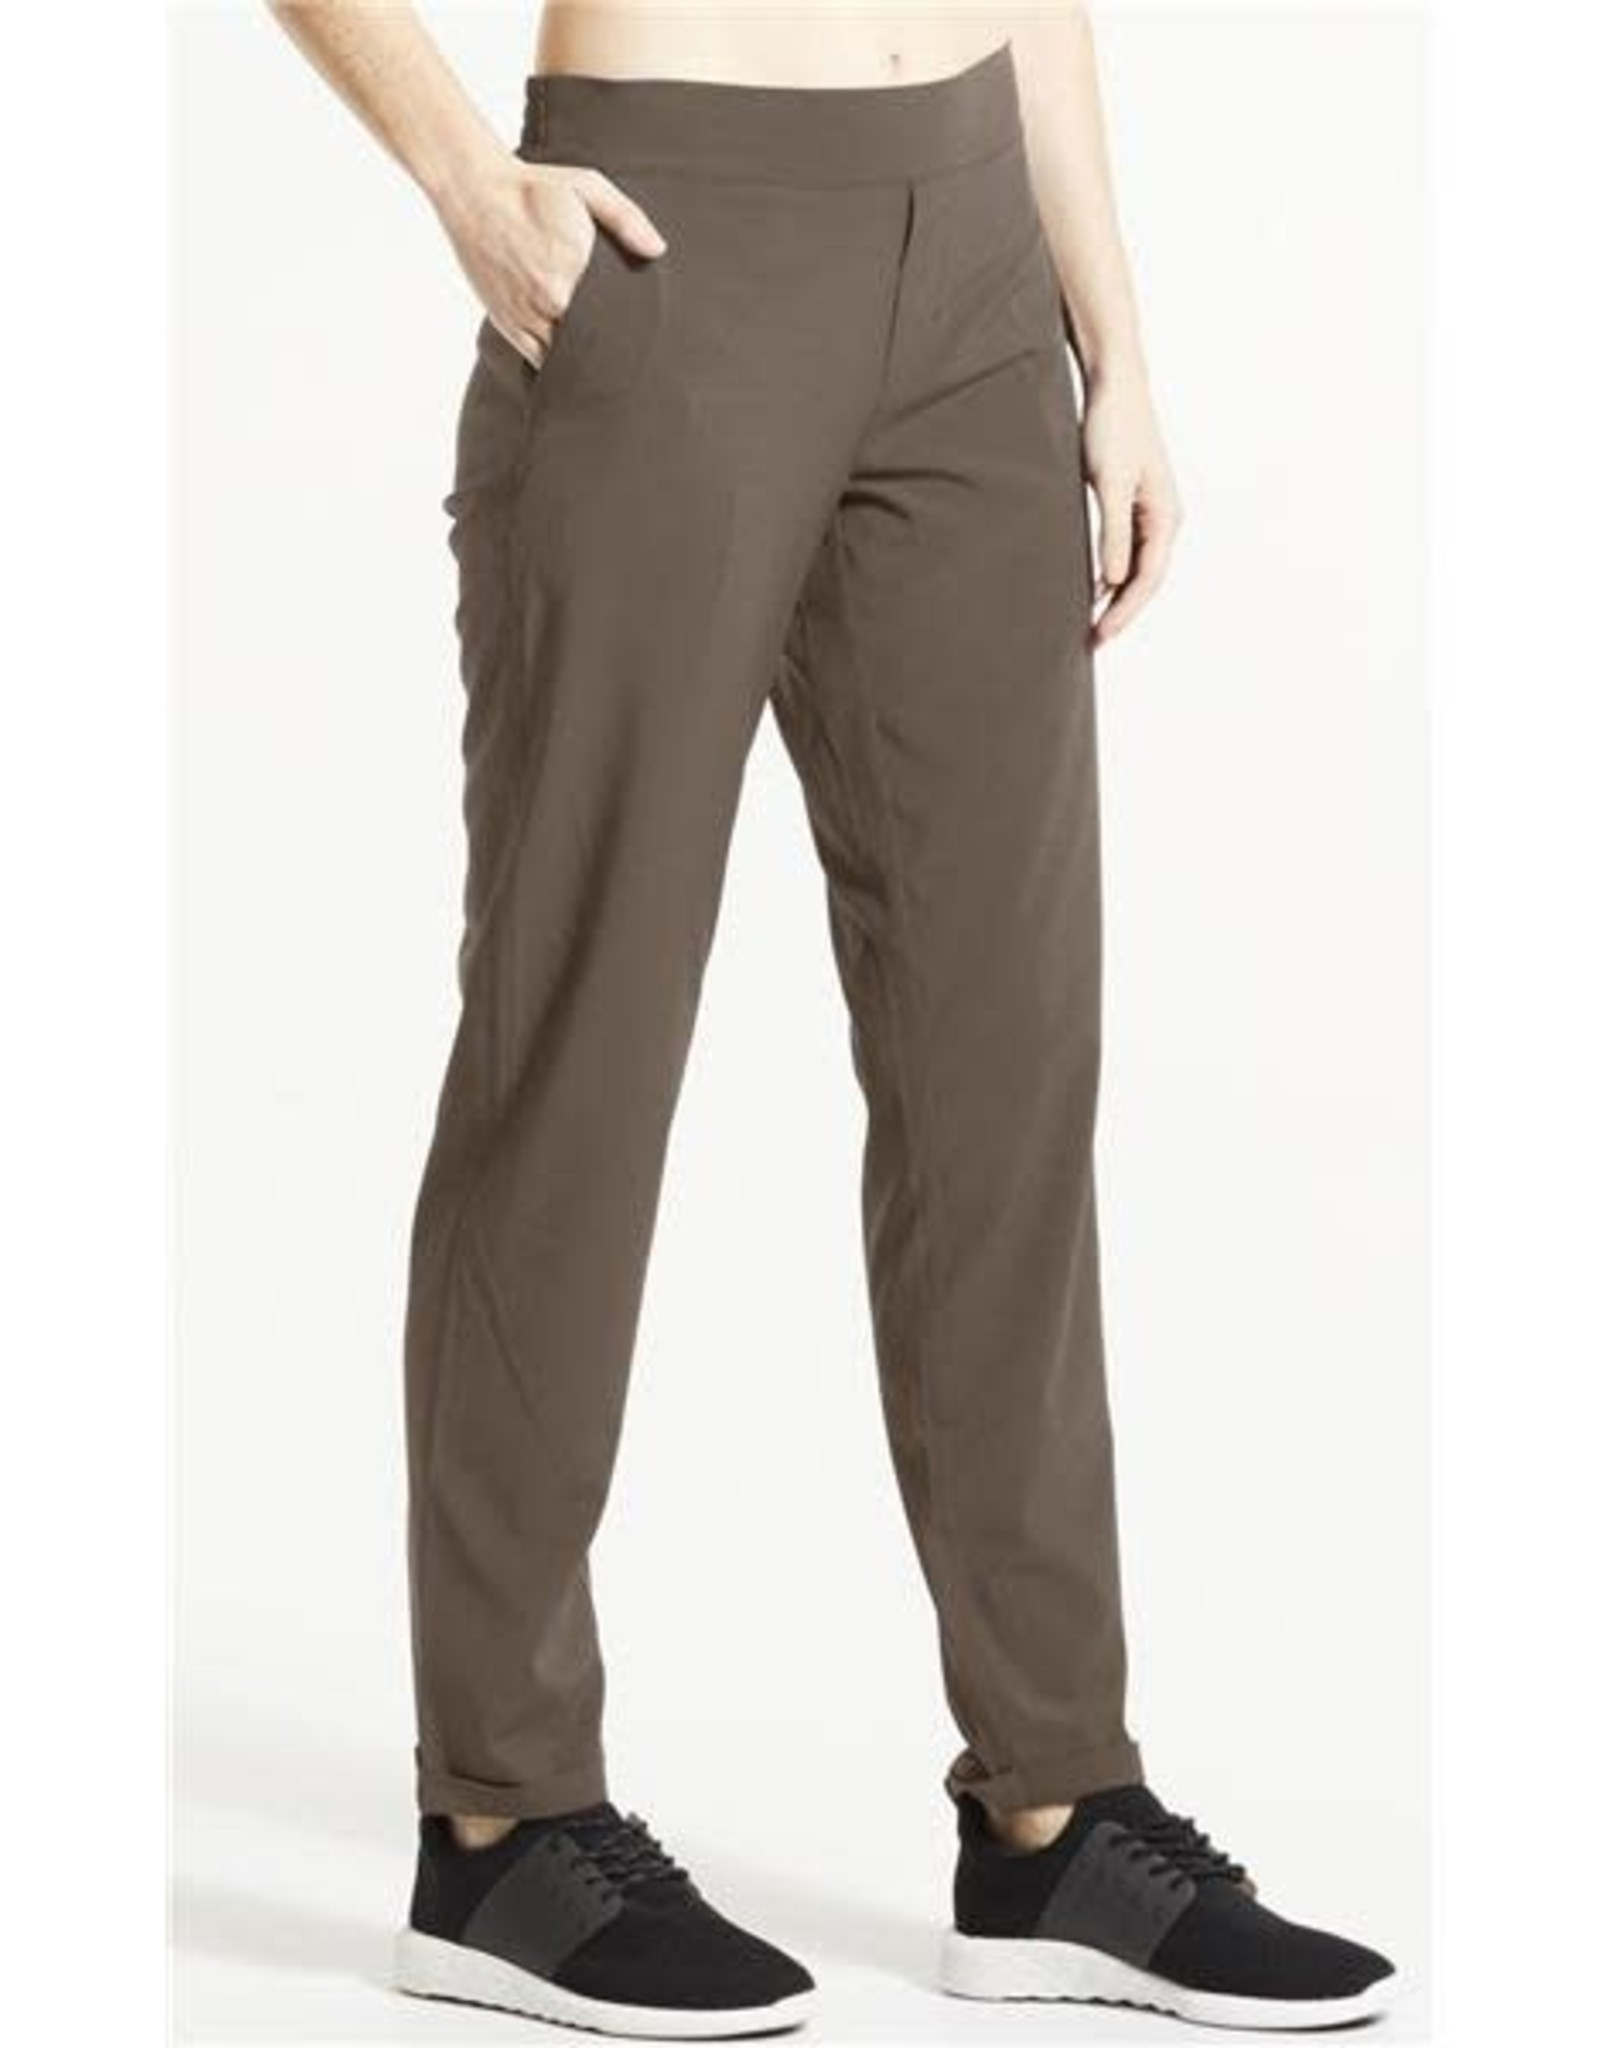 FIG JIB pants